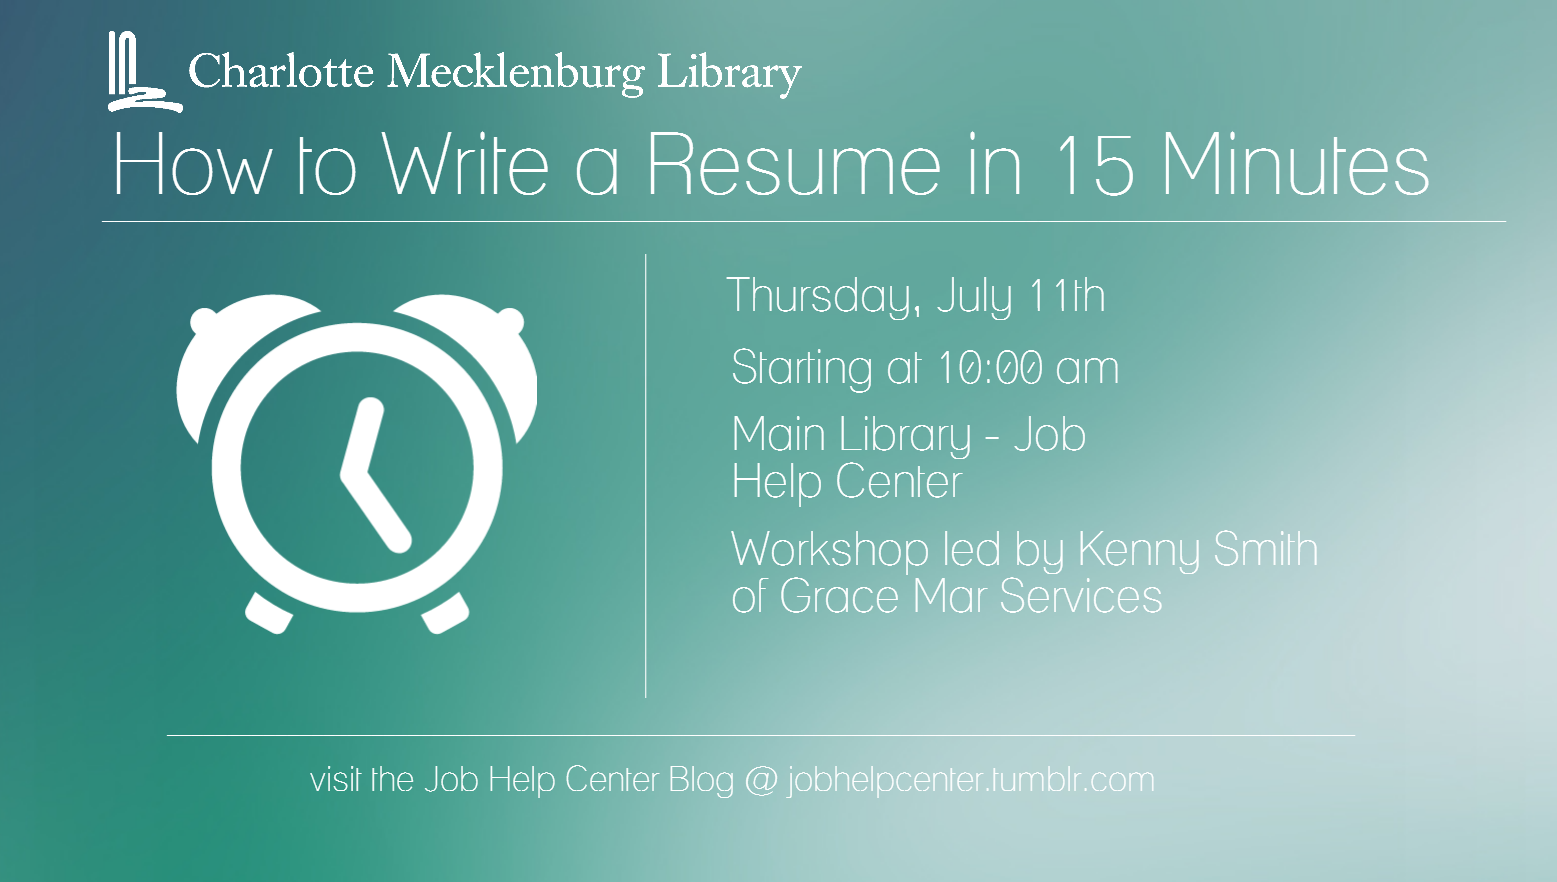 how to write a resume in 15 minutes learn writing tips that will